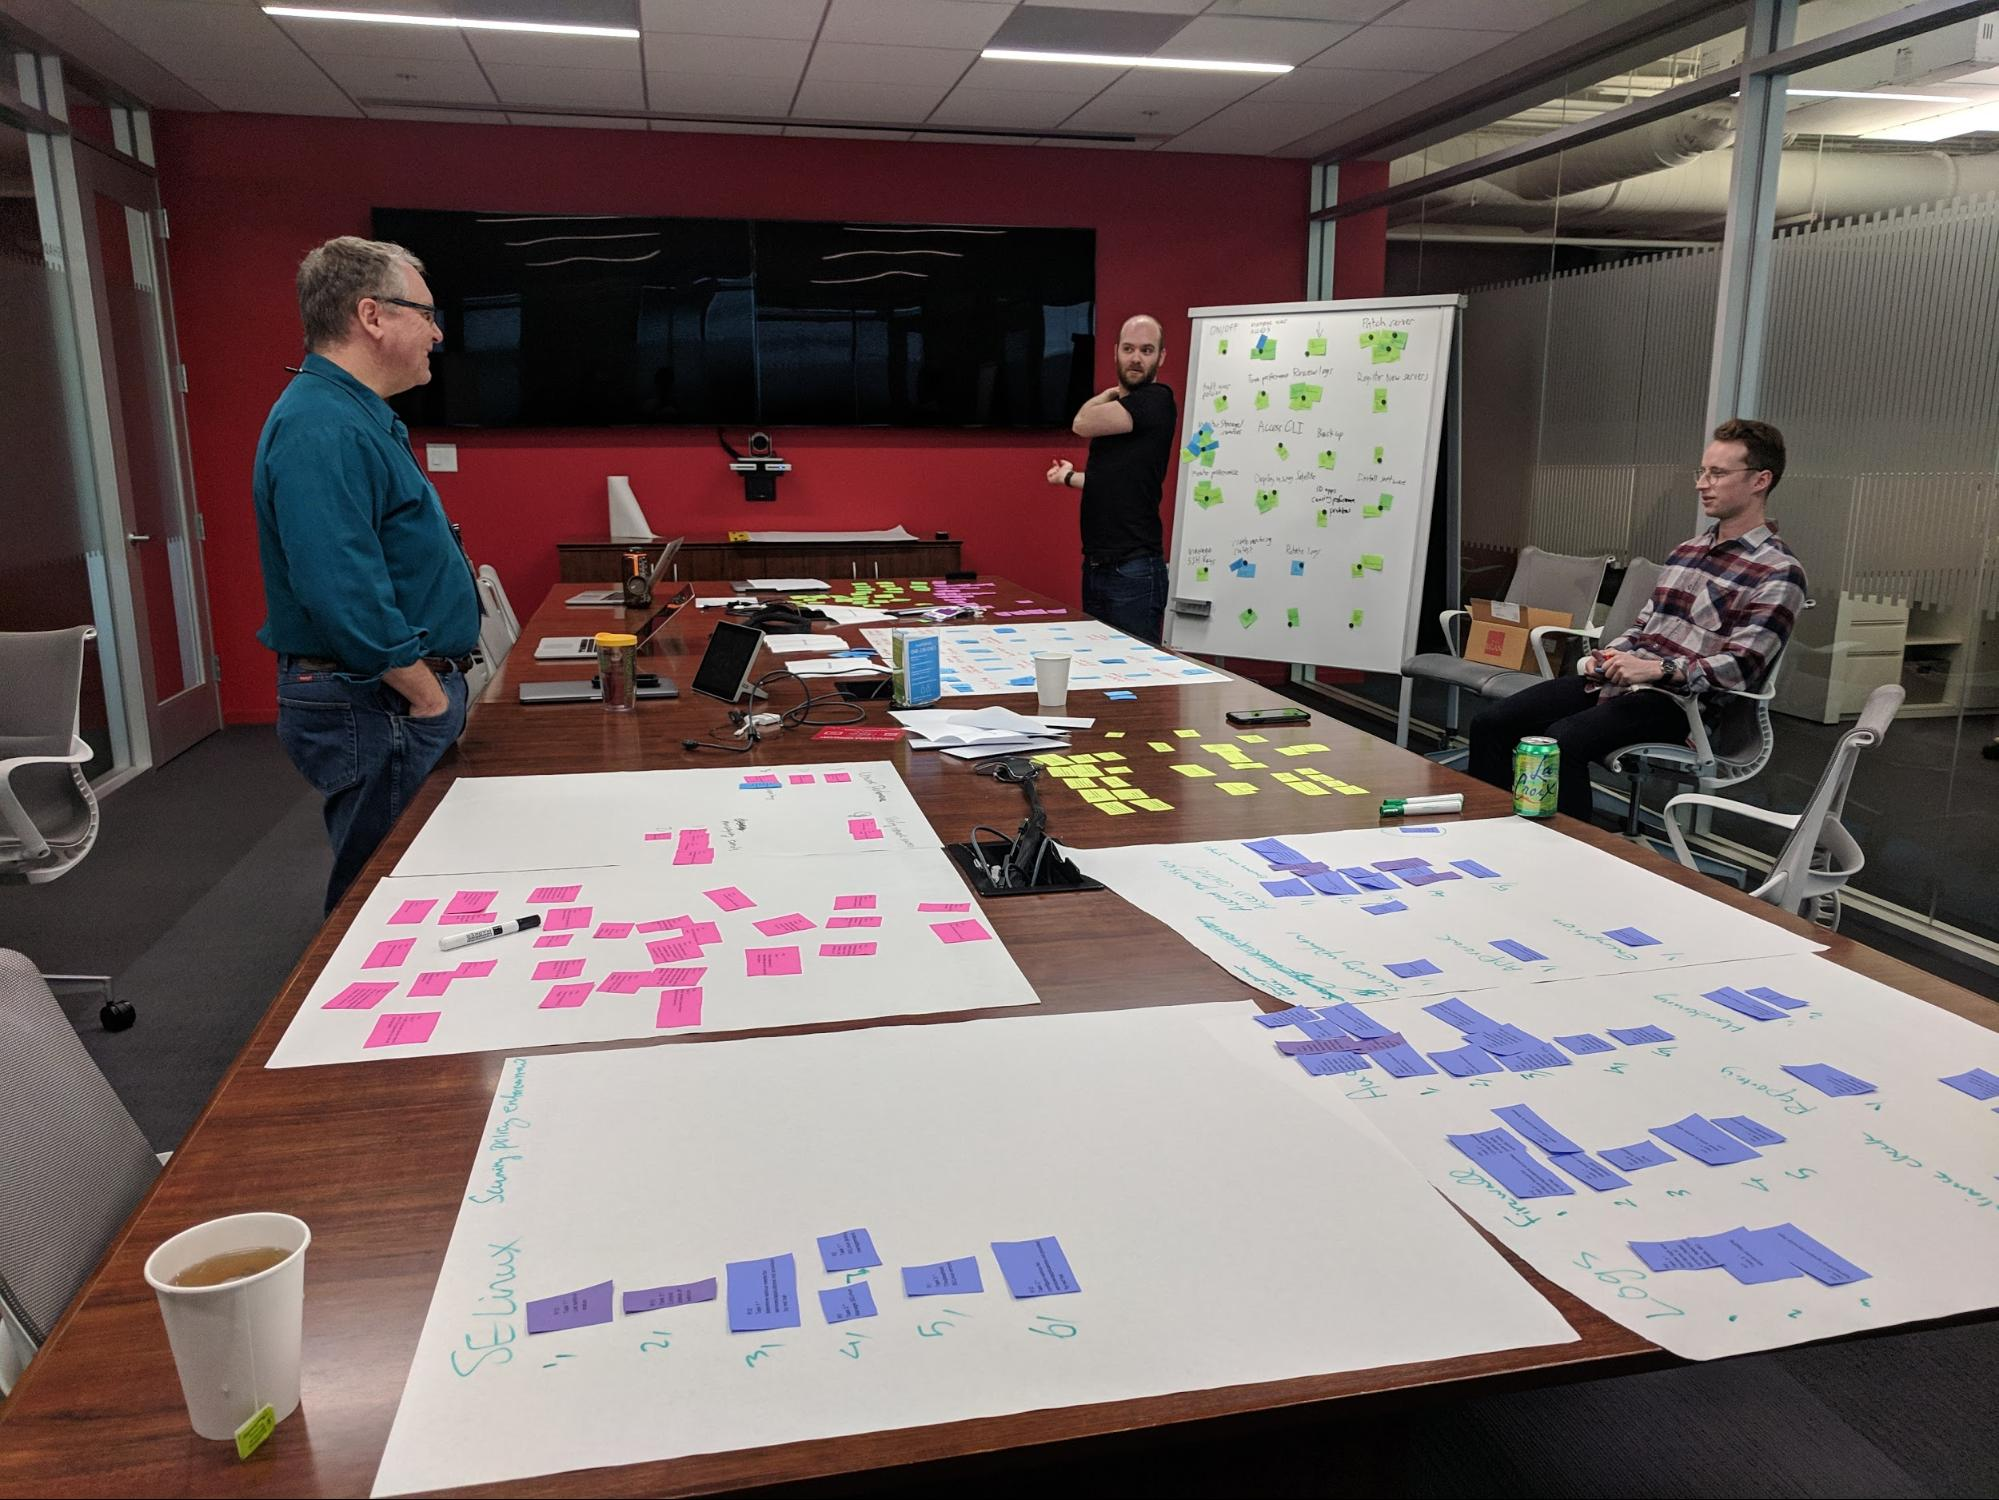 Affinity Diagramming of RHEL Tasks by Red Hat UX Research Team